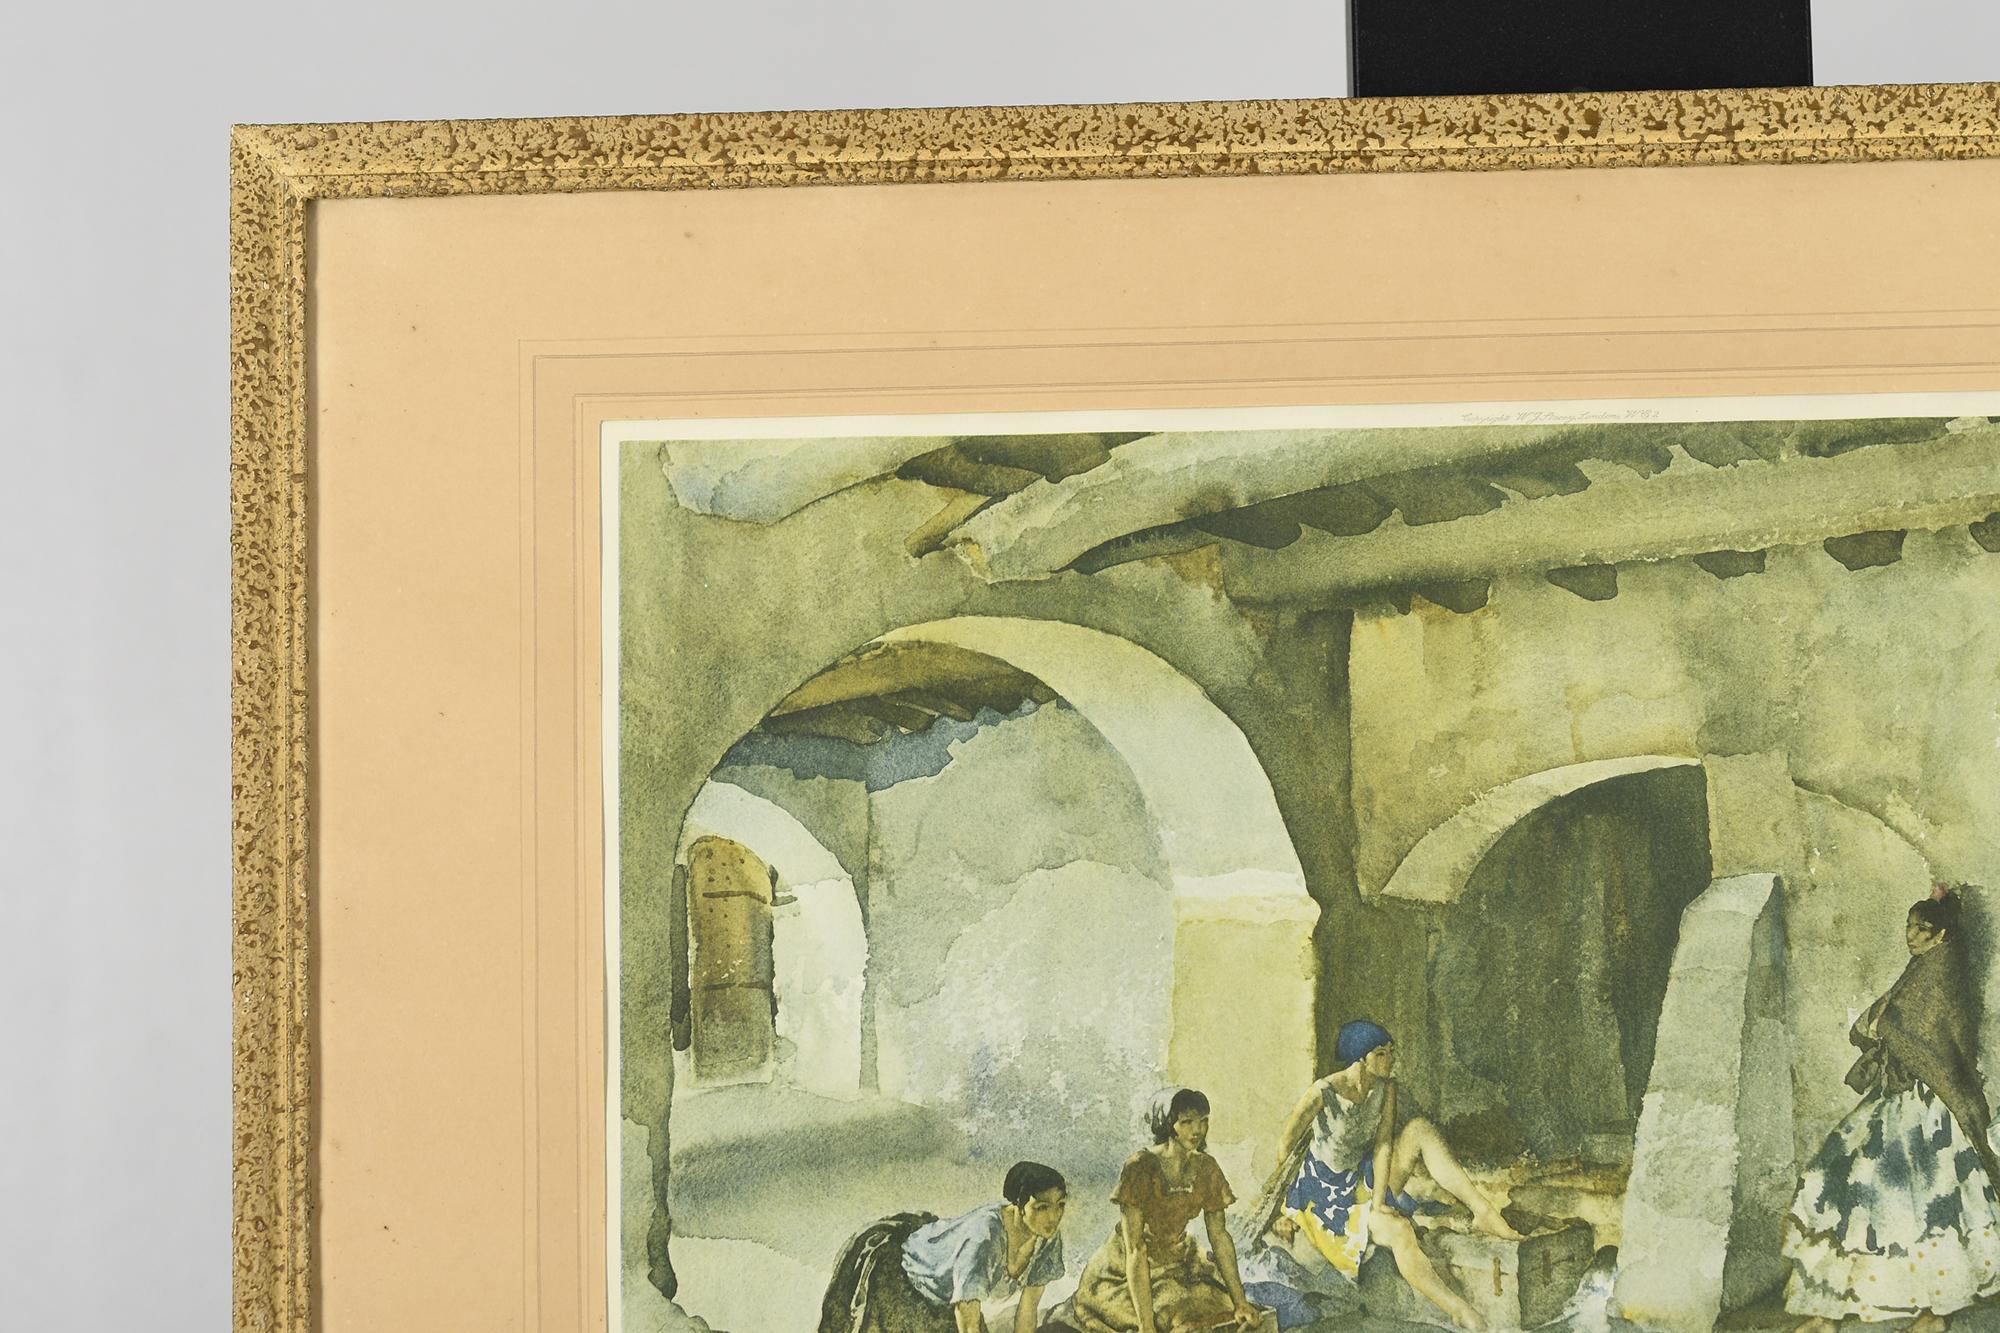 """Signed Limited Edition by Sir William Russell Flint """"Unwelcome Observers"""" - Image 6 of 8"""